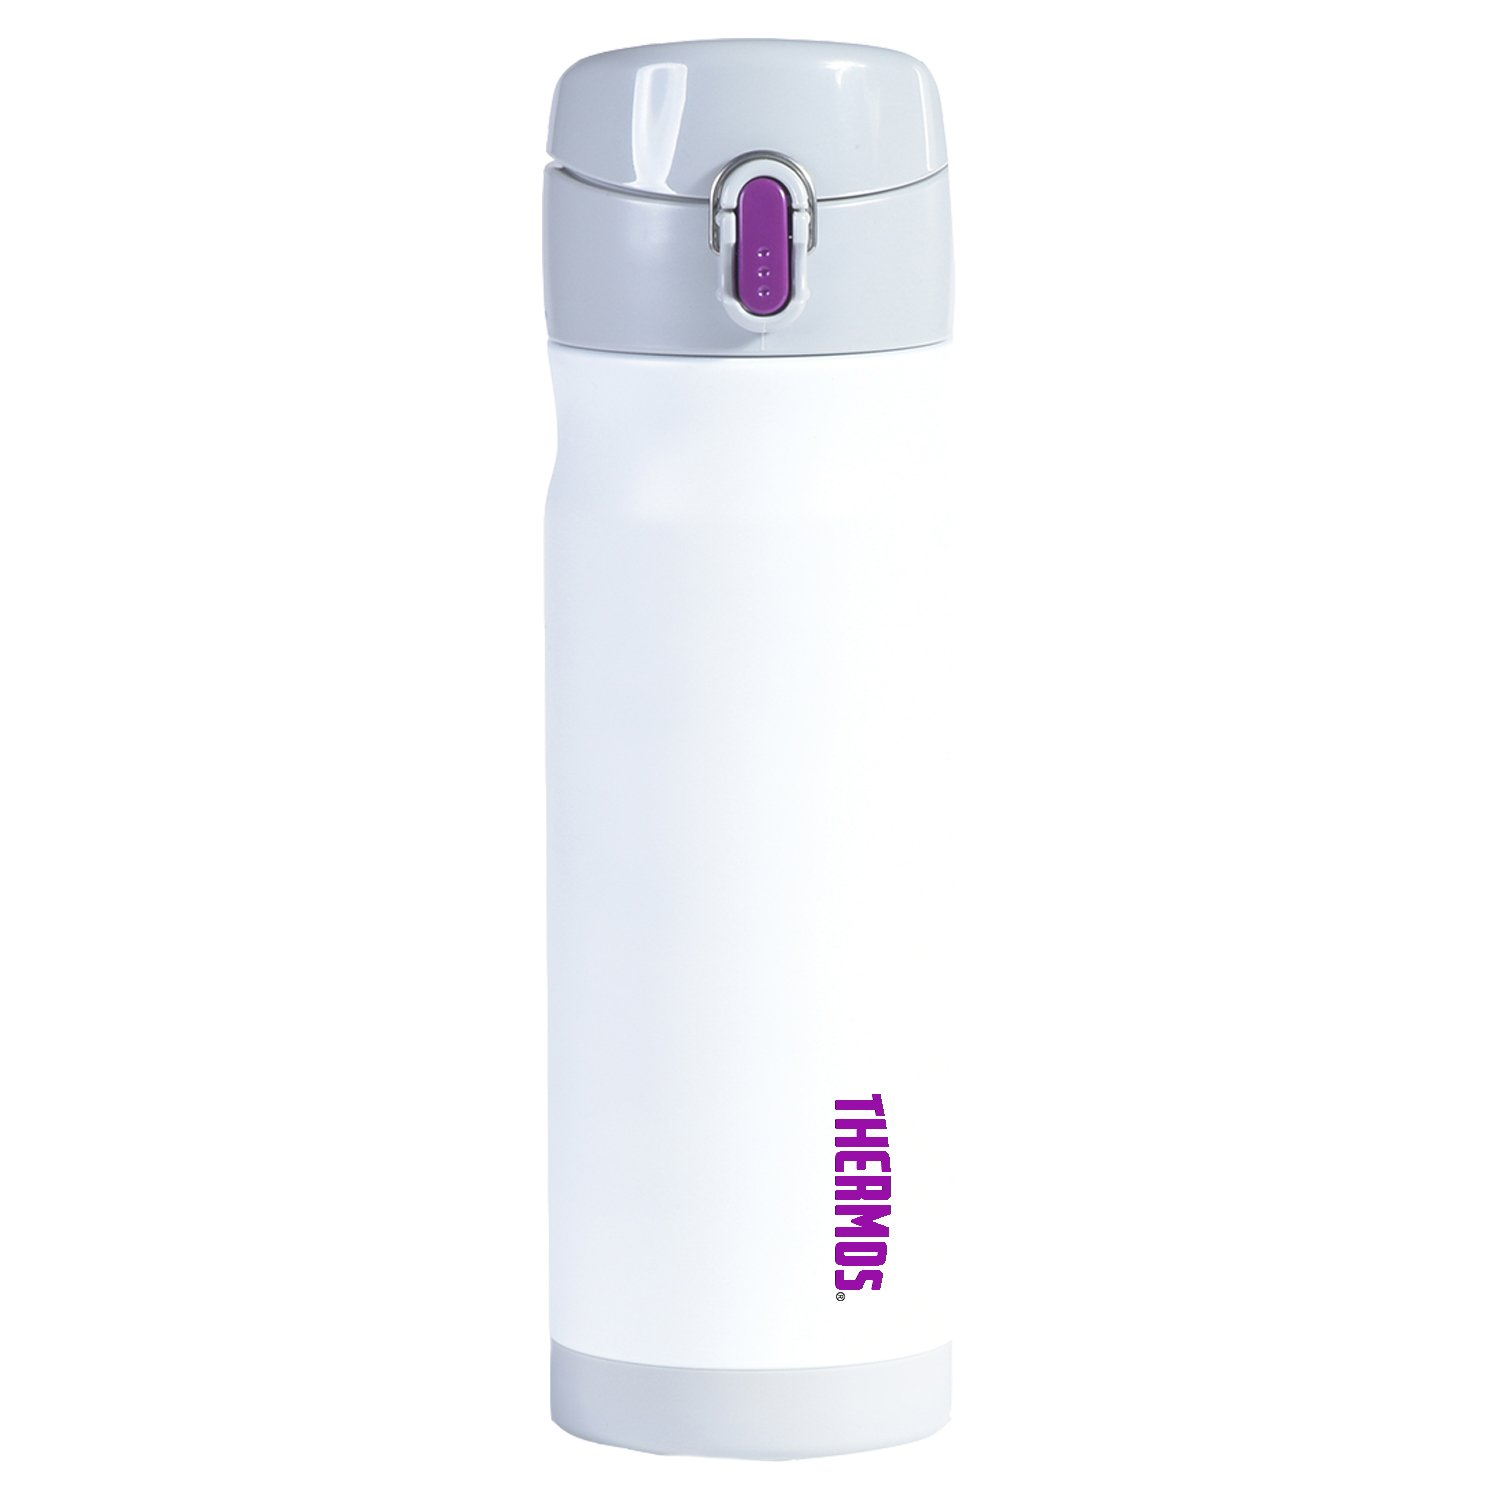 Thermos Vacuum Insulated Stainless Steel Commuter Bottle, 16-ounce, White w/Purple Accent